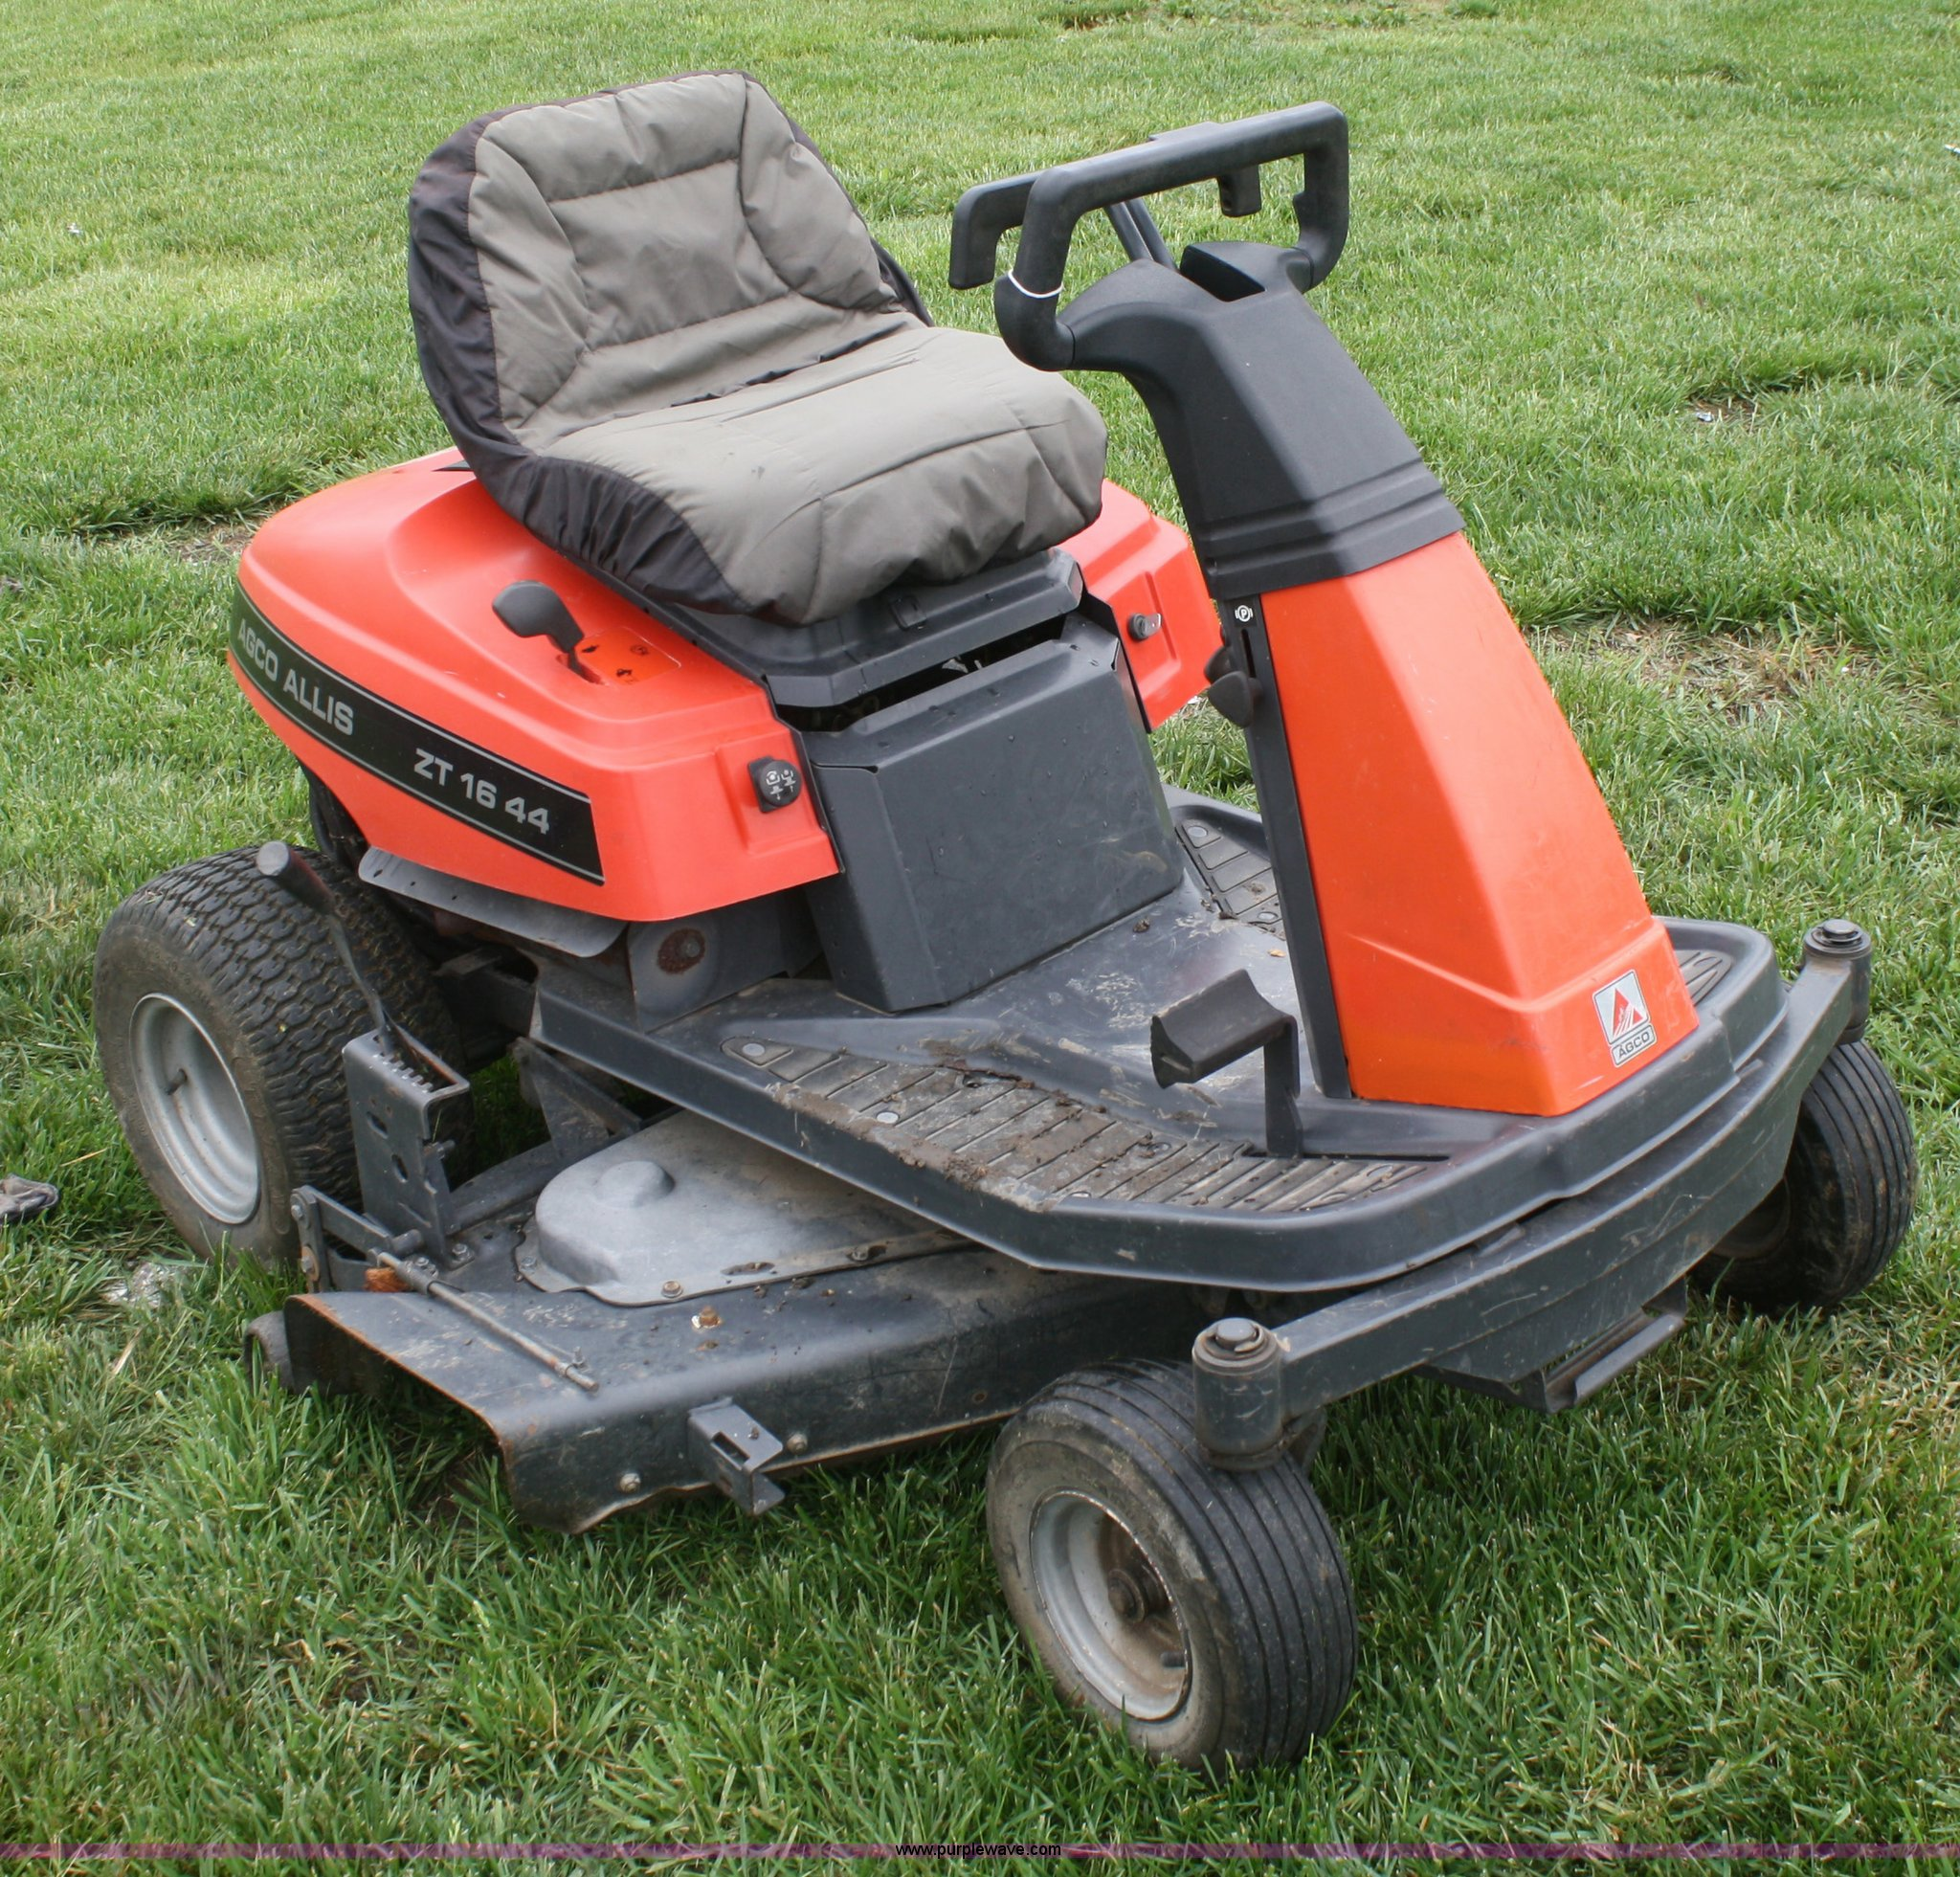 Derodspec Blog Archive Agco Allis Lawn Tractor Wiring Diagram Bolens Mower Along With D17 Diagrams Together